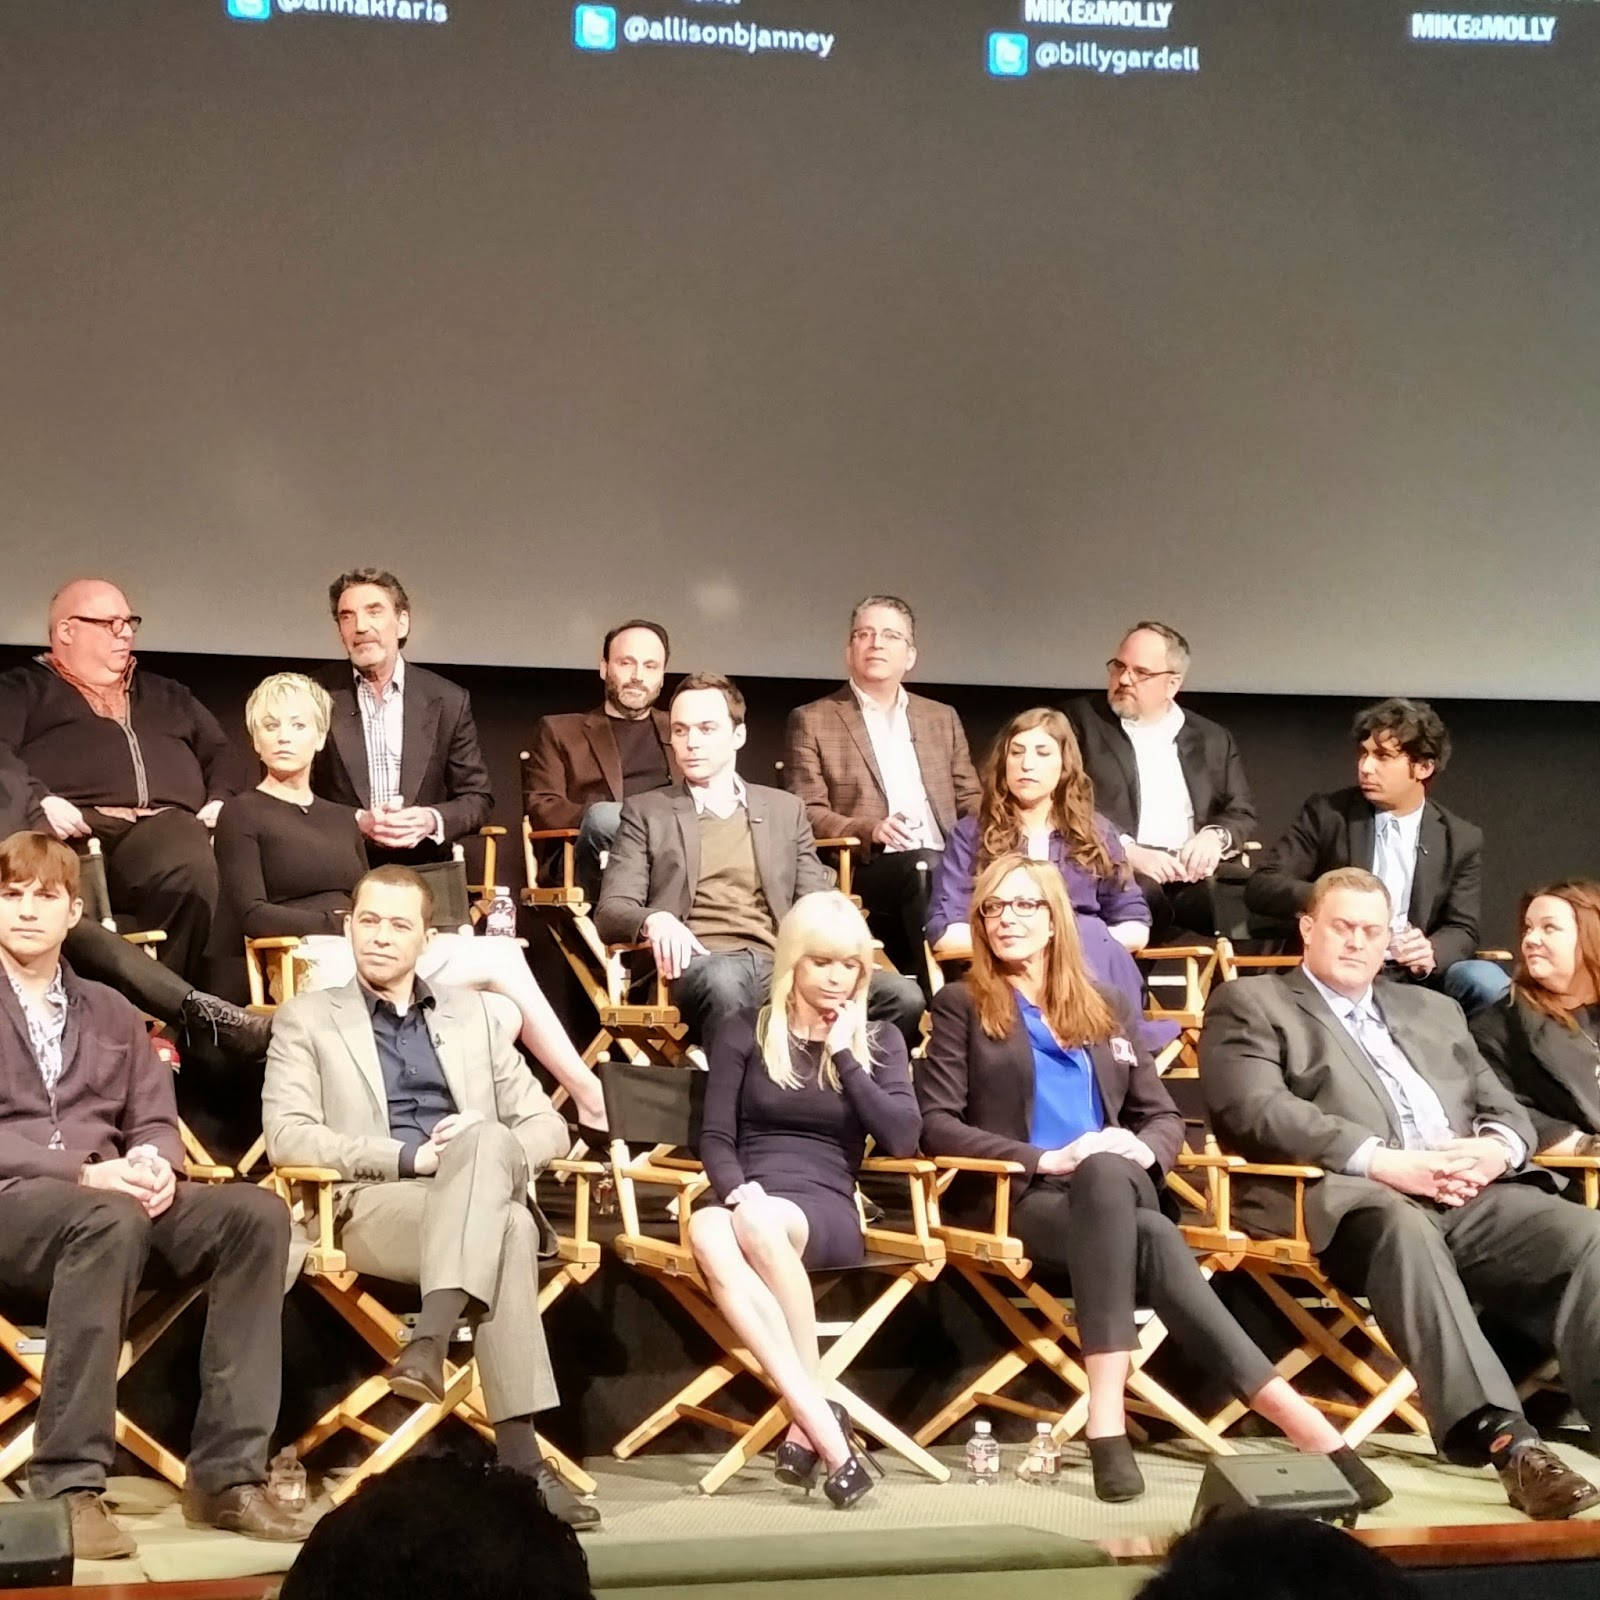 The cast and Crew of Warner Bros. shows